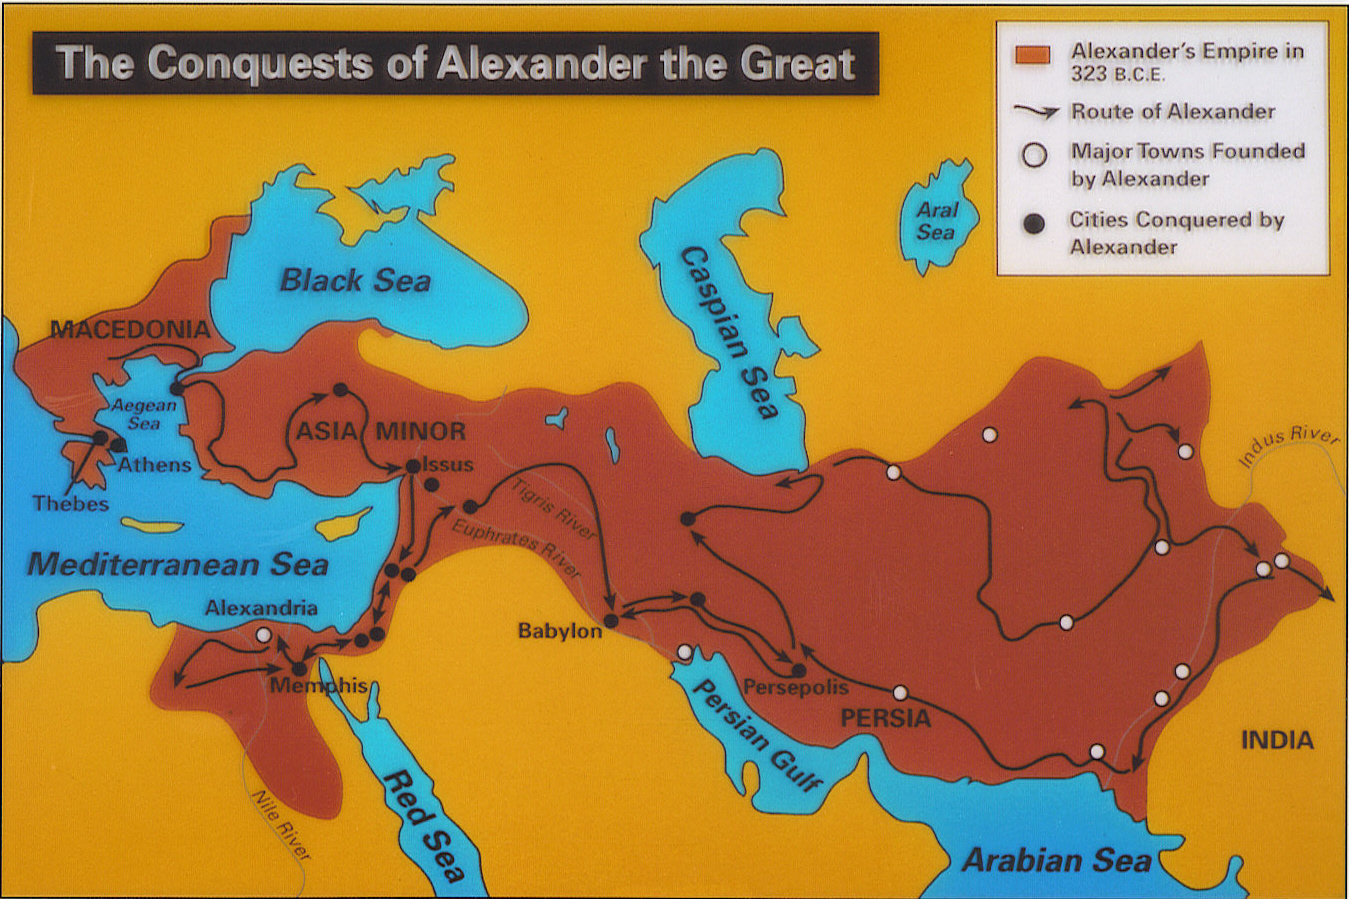 alexander the great conquered what countries